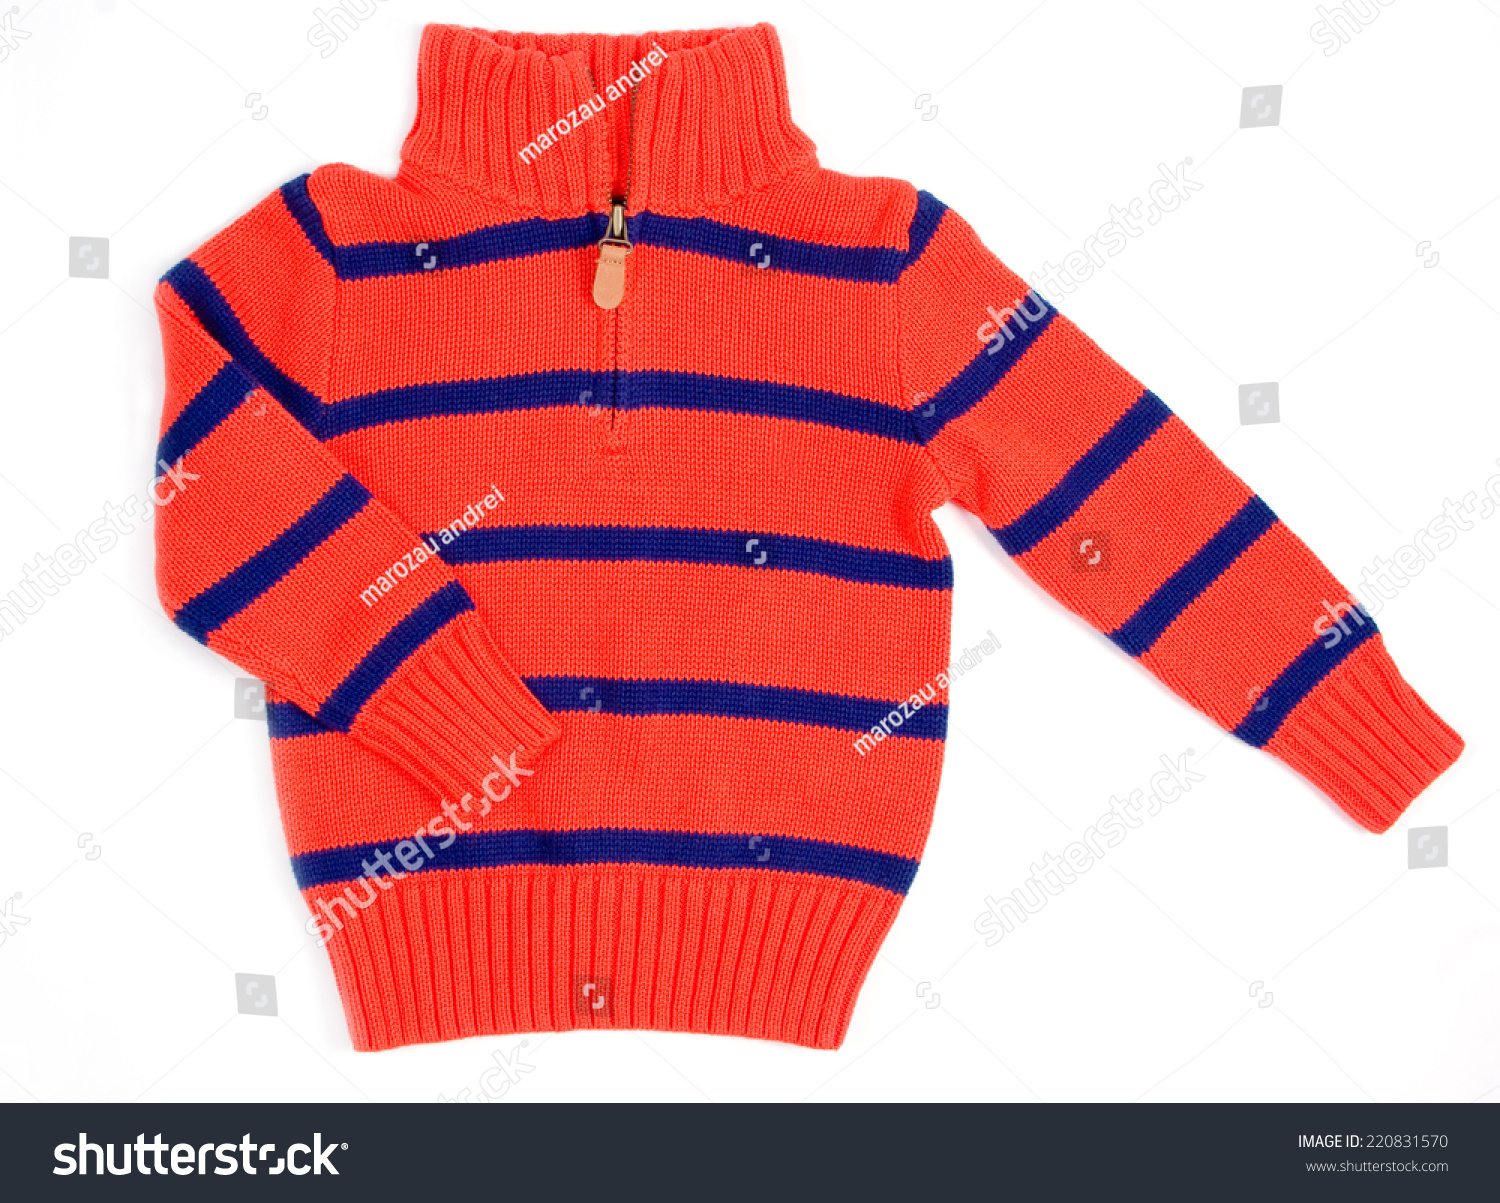 34ee6b228a0f Knitted Children Cardigan Zipper Orange Blue Stock Photo (Edit Now ...